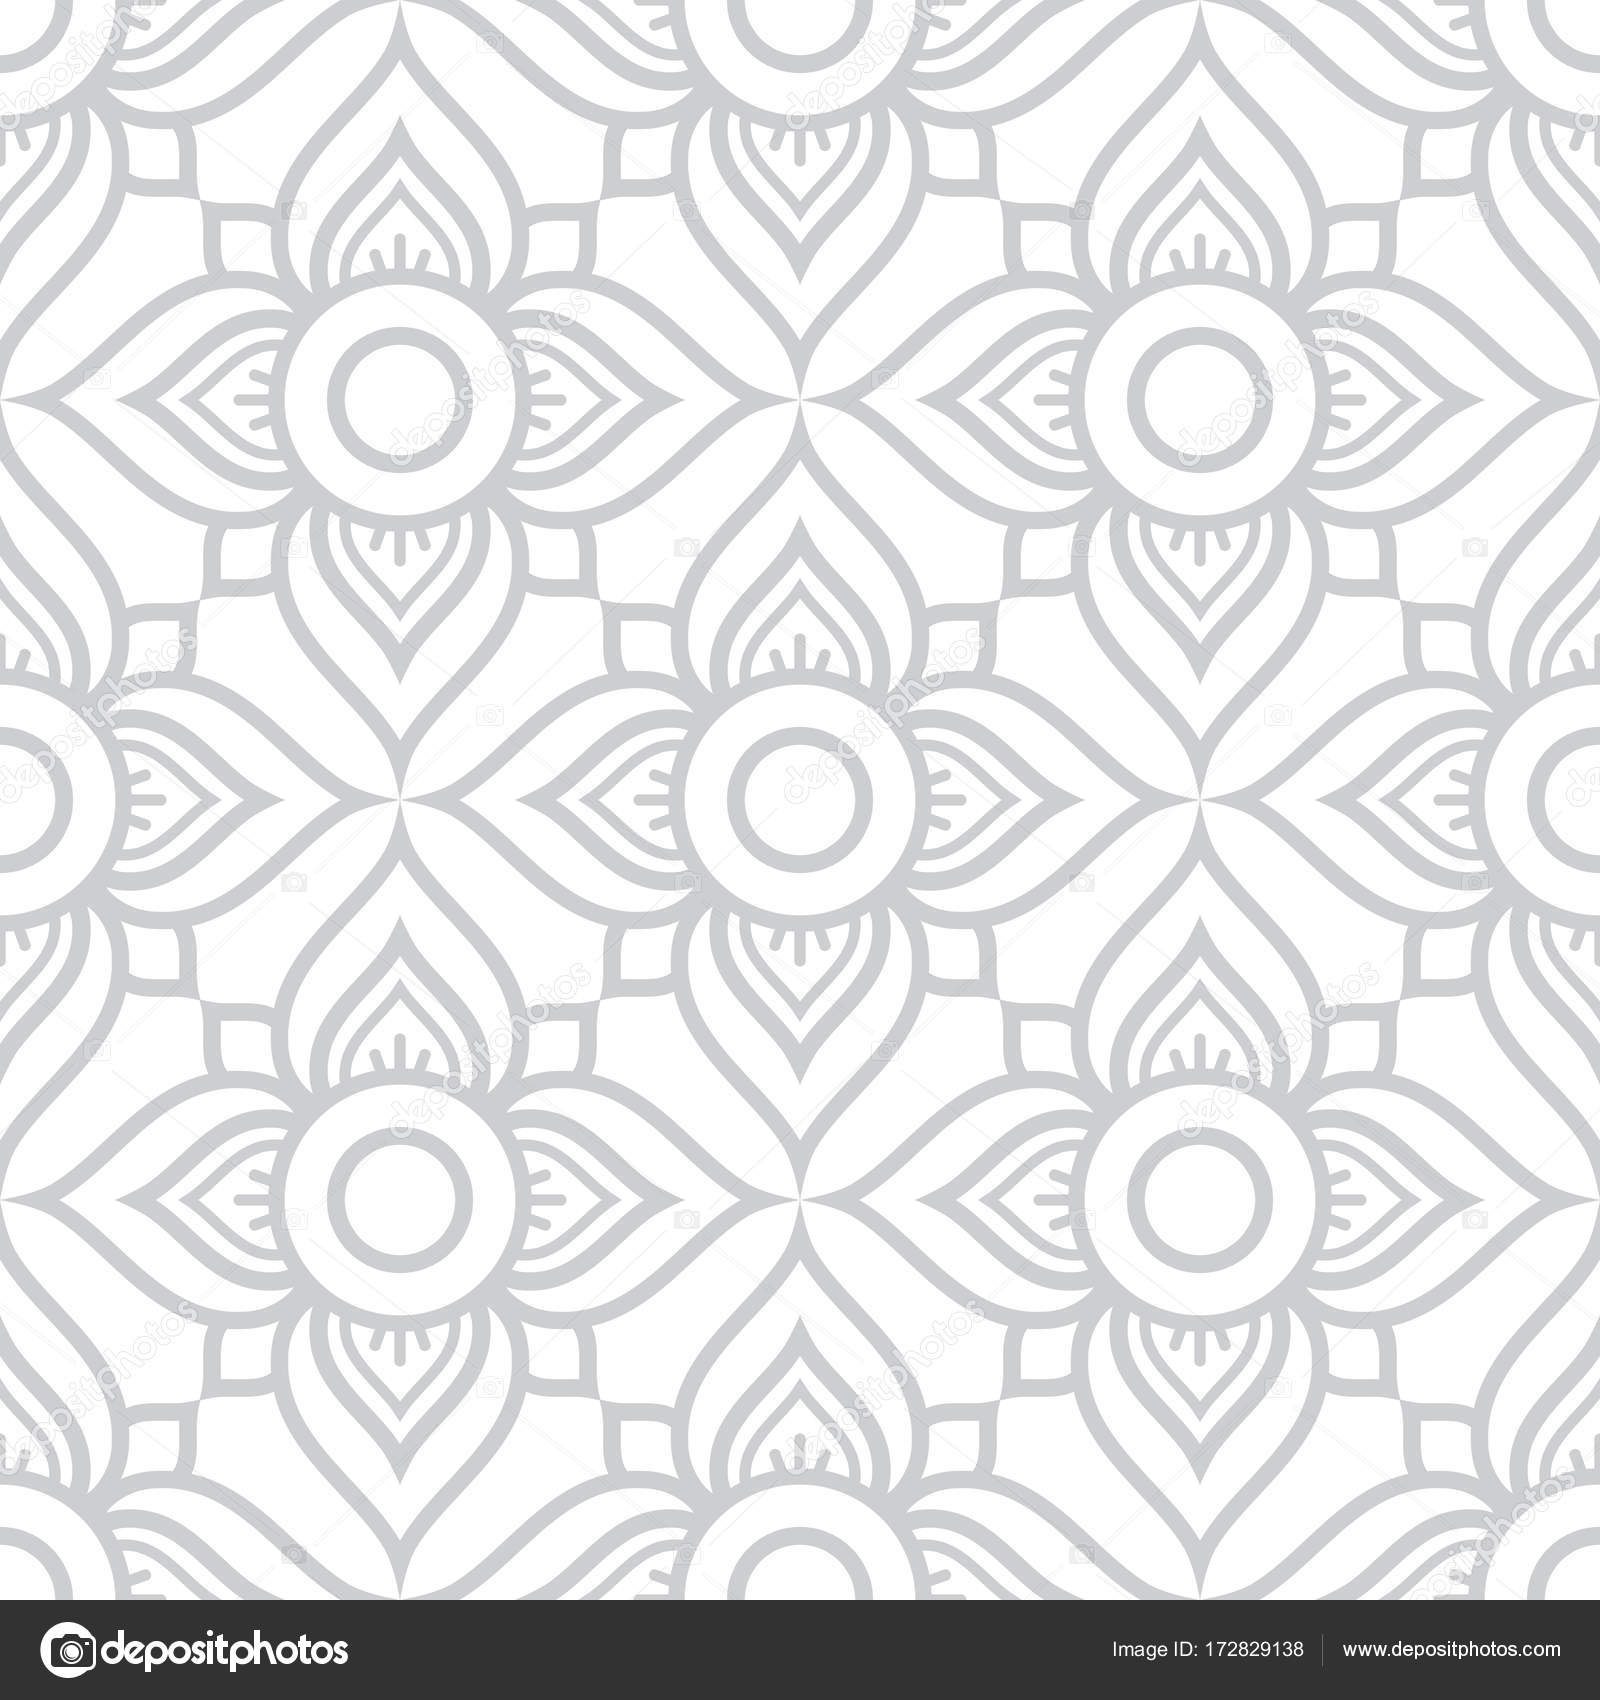 Thai Flowers Seamless Vector Pattern Grey Floral Repetitive Design